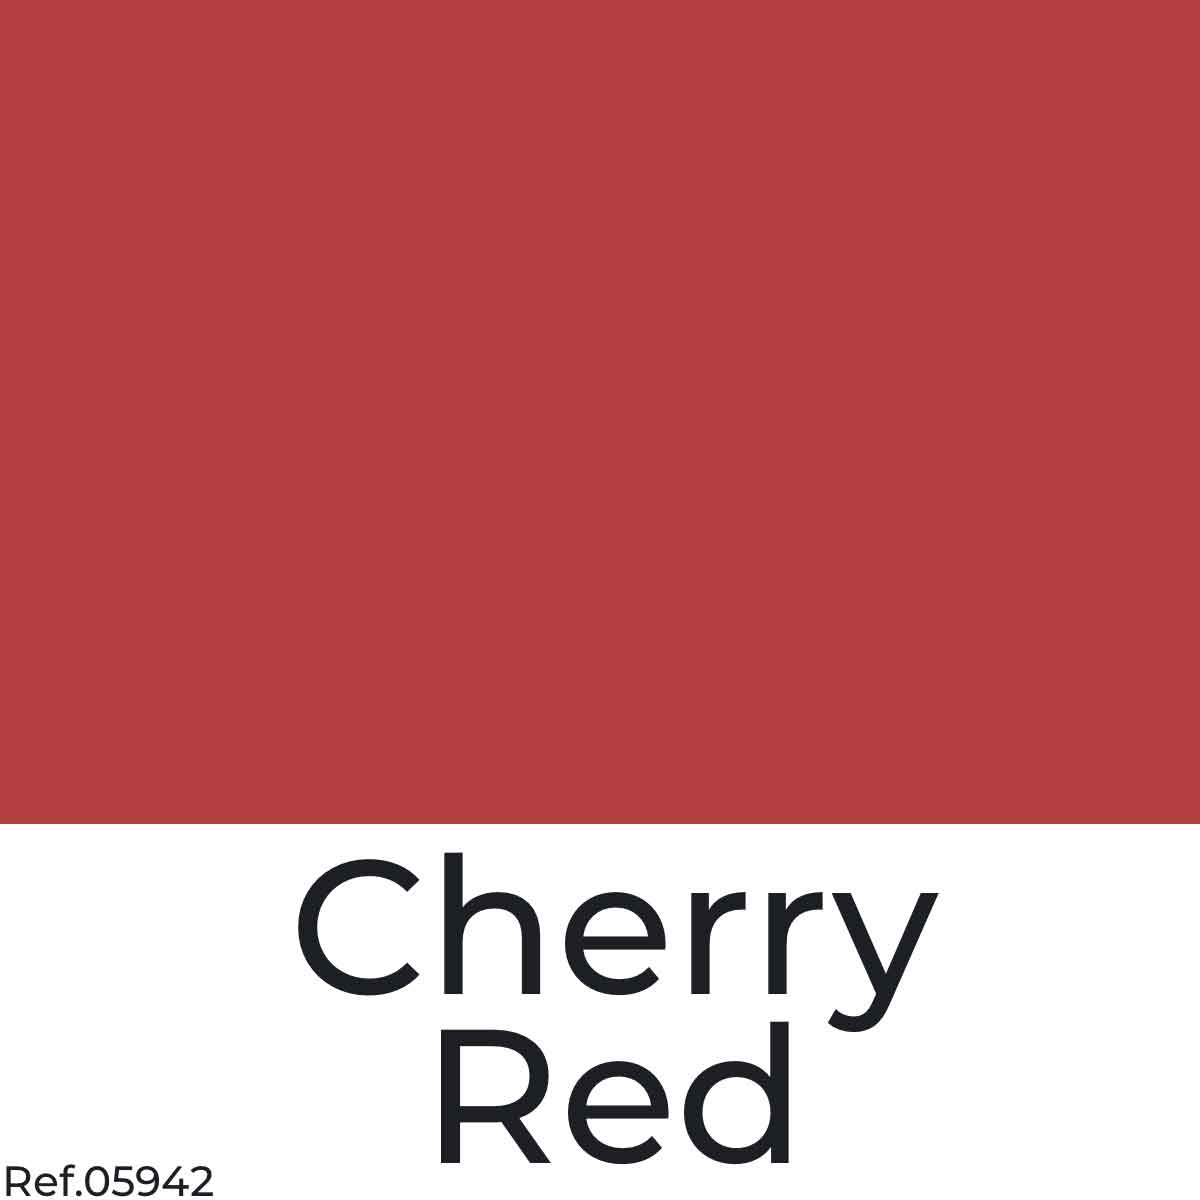 Cherry Red Color Poster Paper from najamonline.com Abu Dhabi - UAE